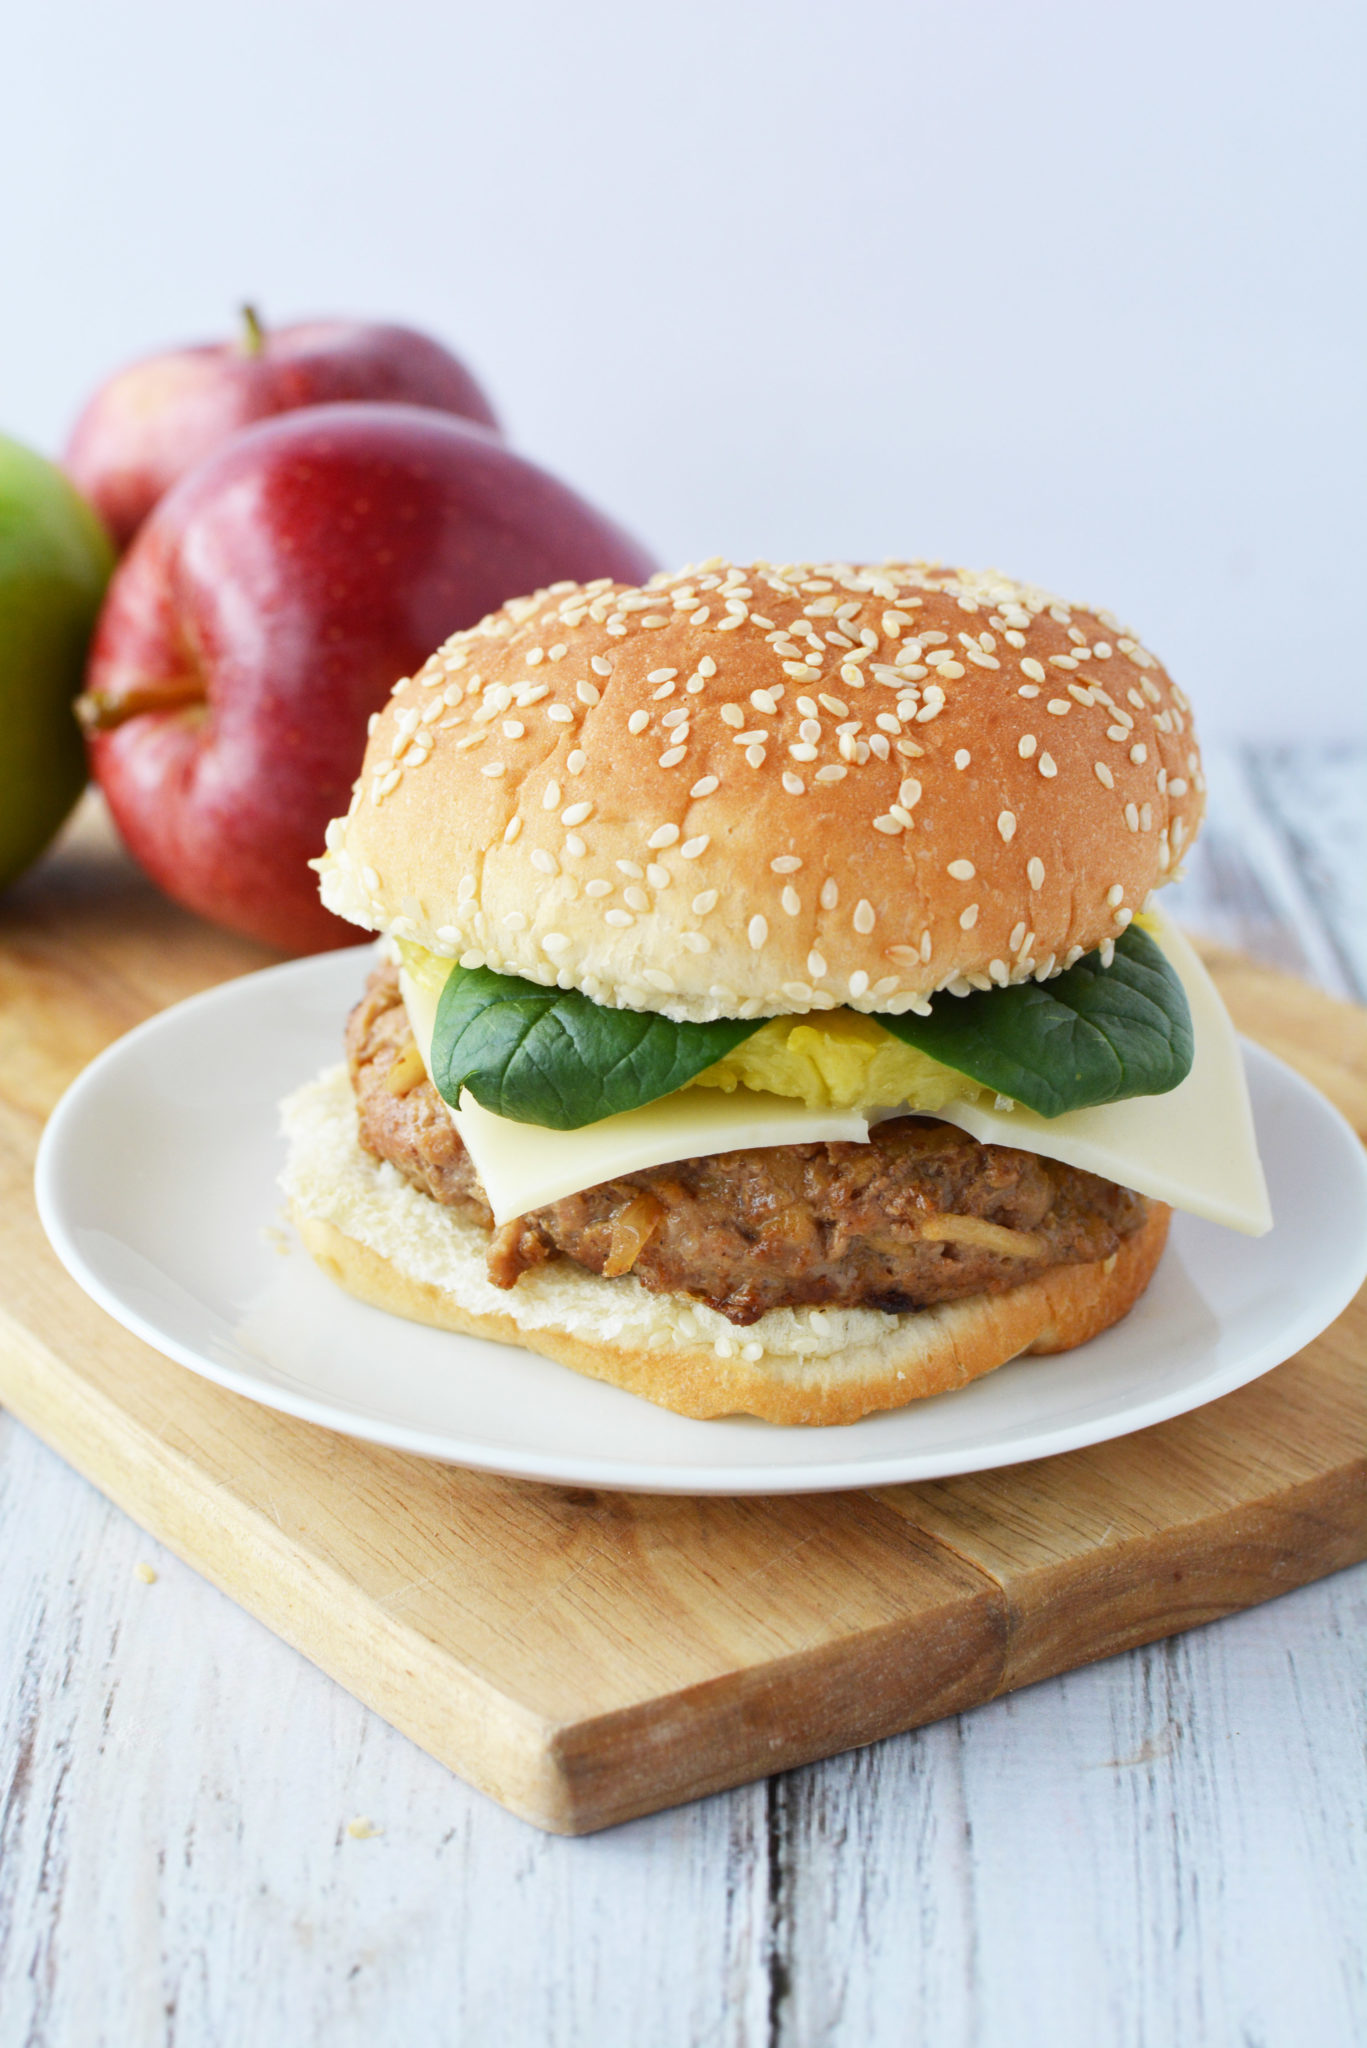 Pork And Apple Burger Incredibly Yummy, Moist & Flavorful